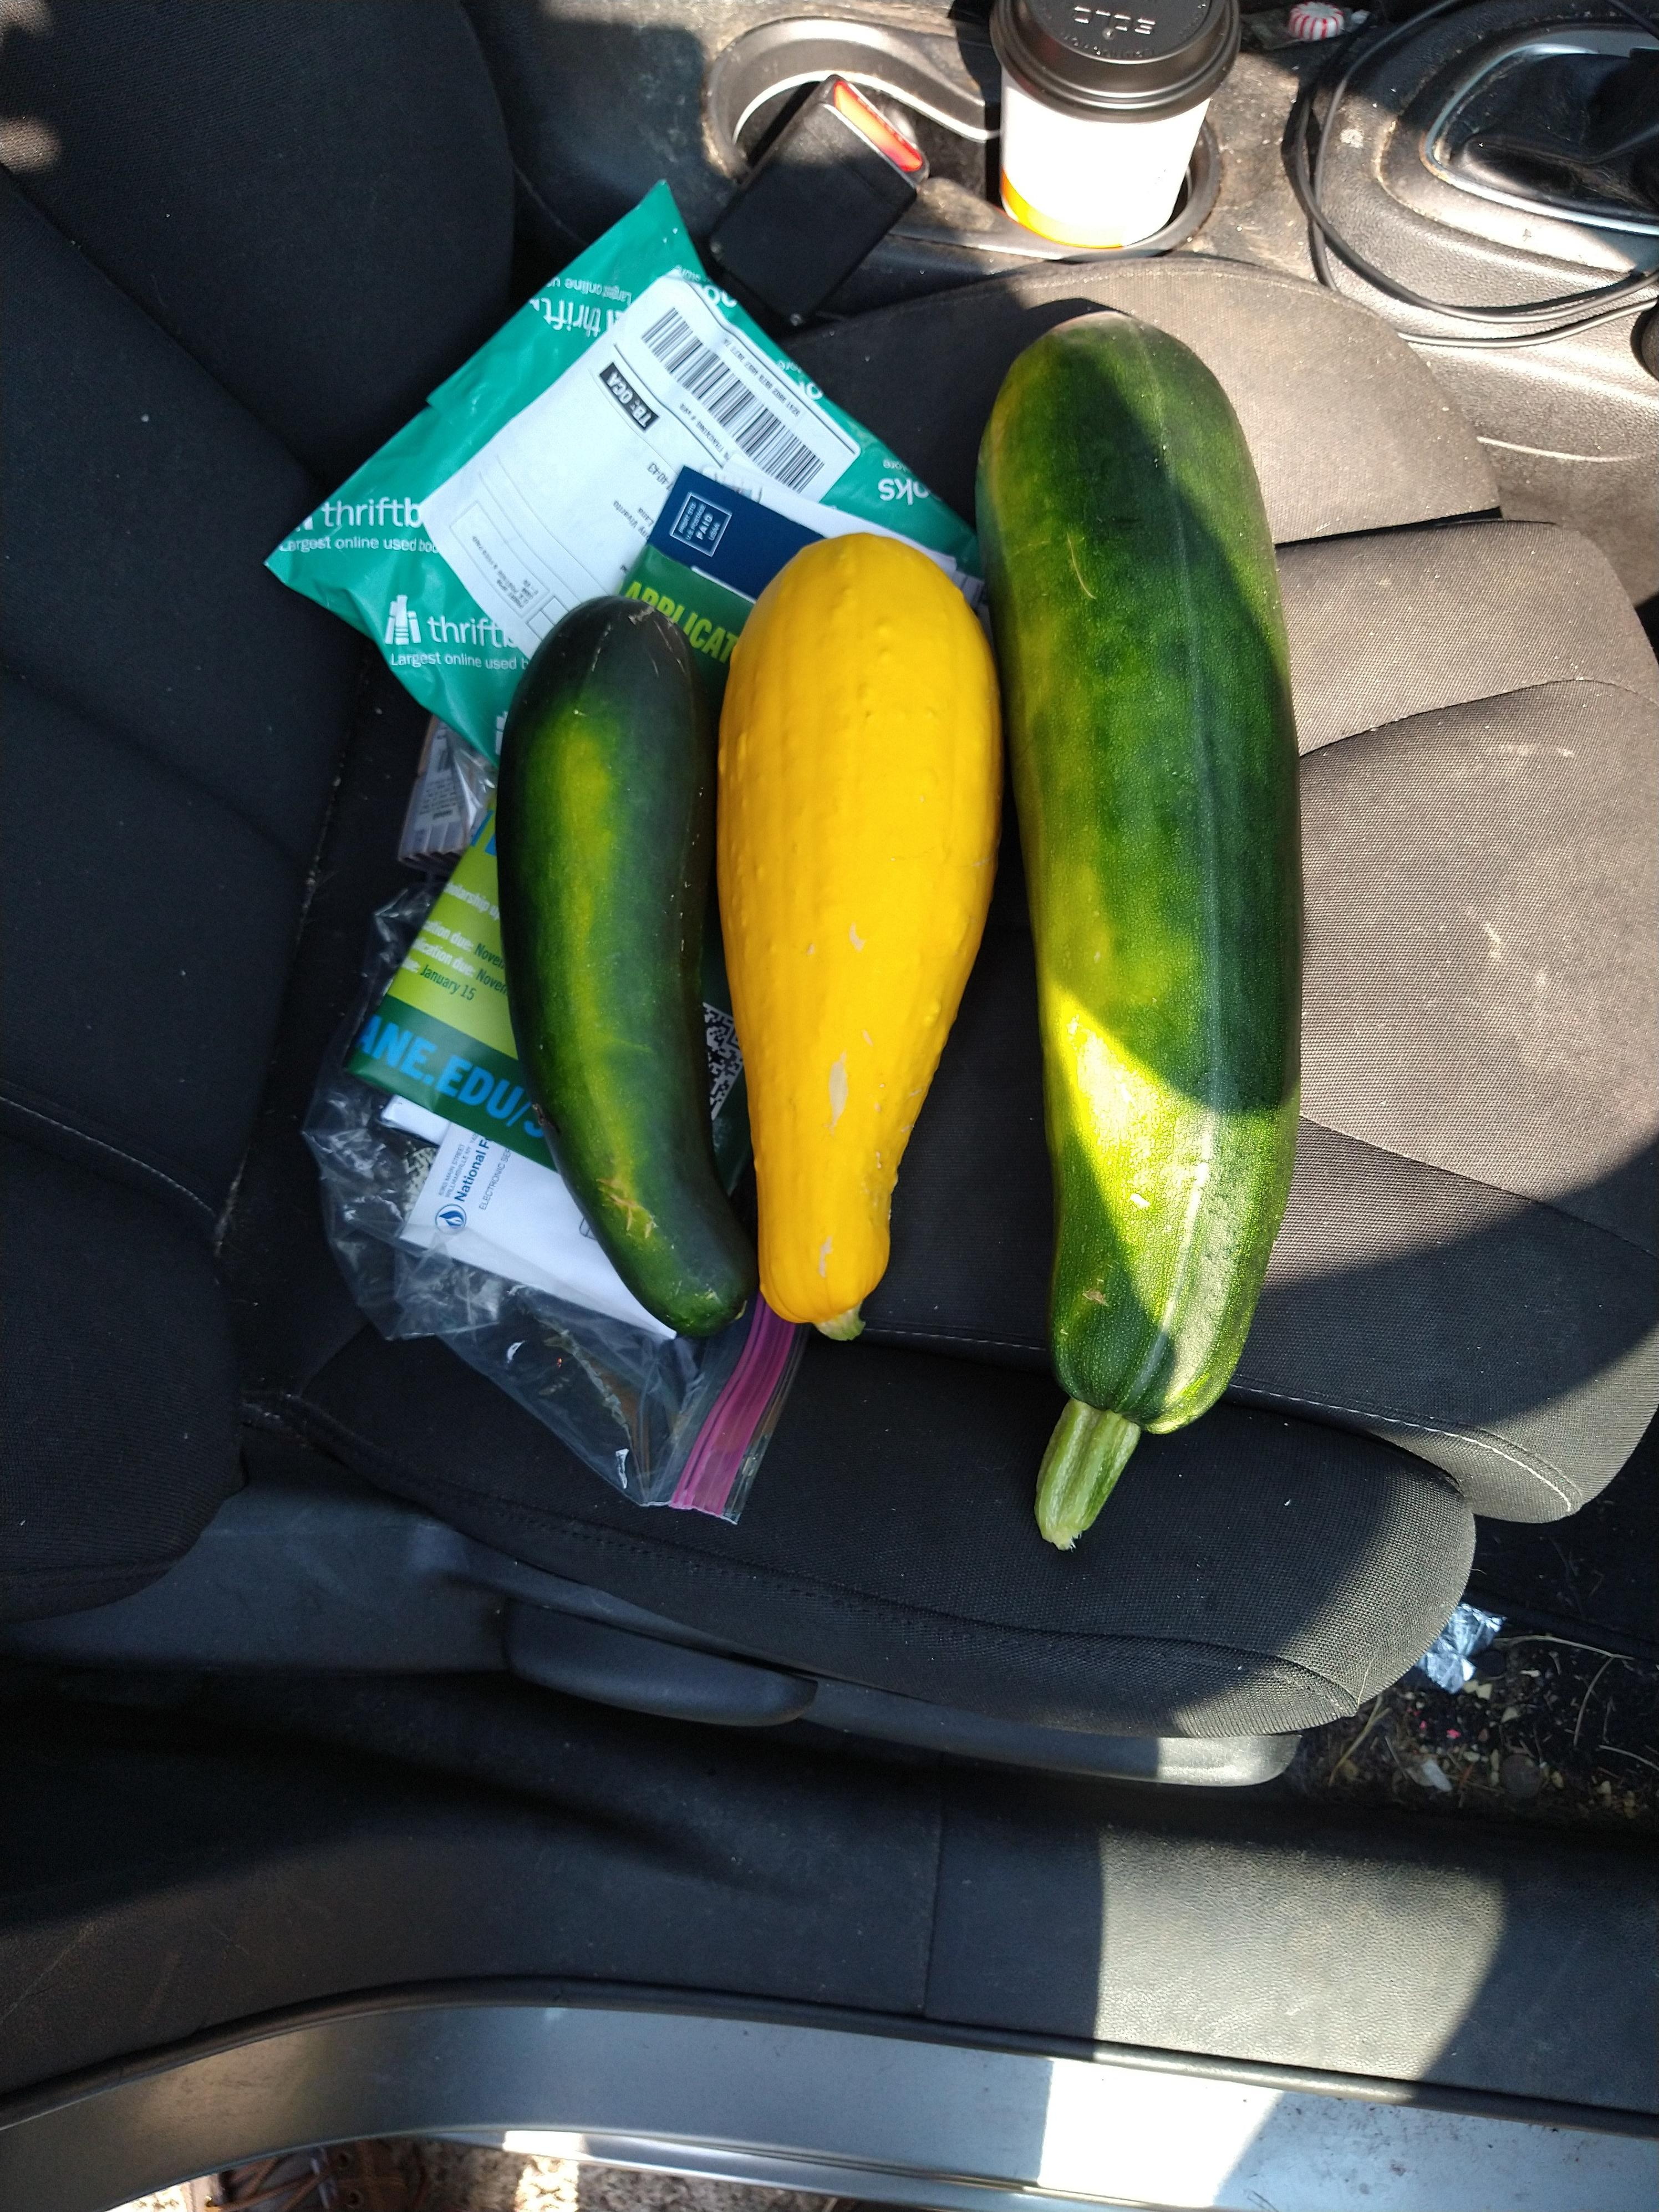 Click image for larger version.  Name:squash.jpg Views:40 Size:1.42 MB ID:26350